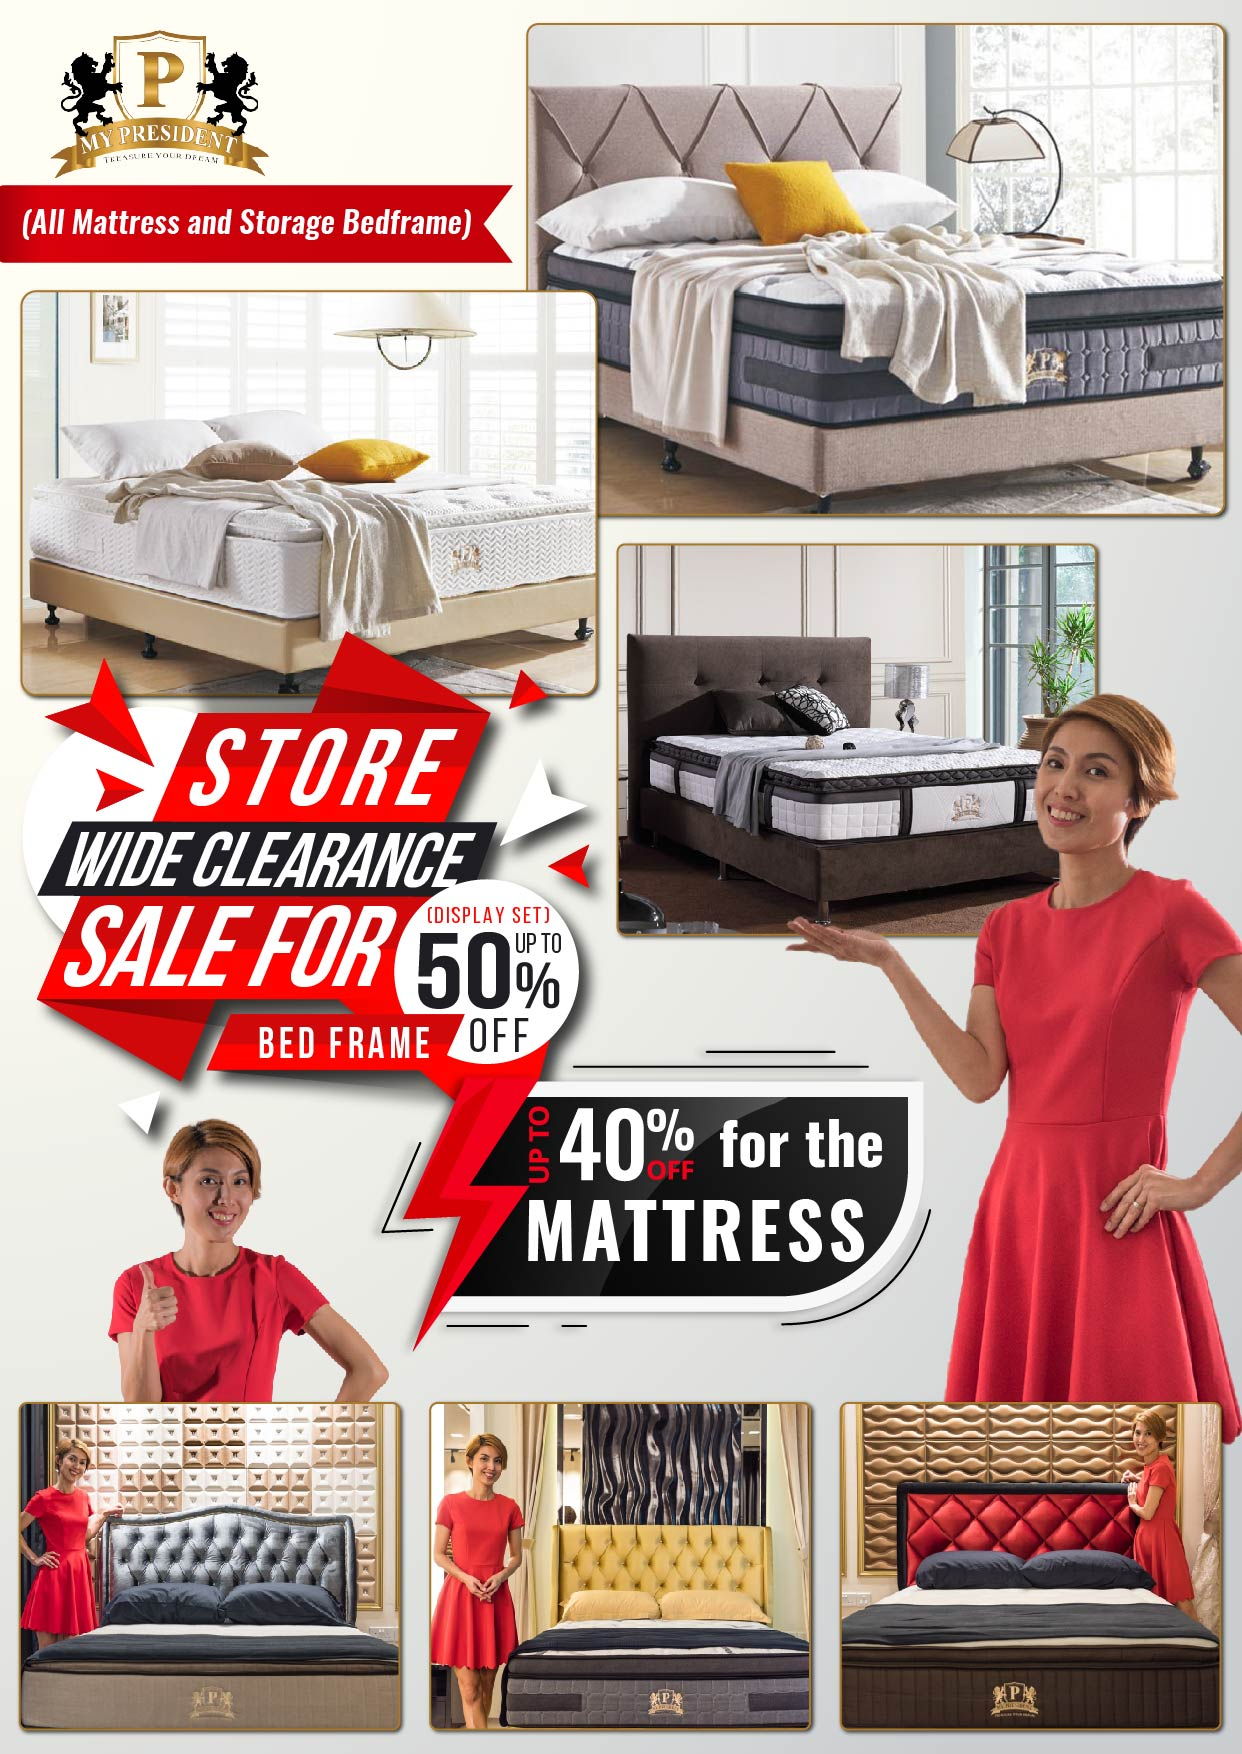 My-President-Mattress-Clearance-Sale